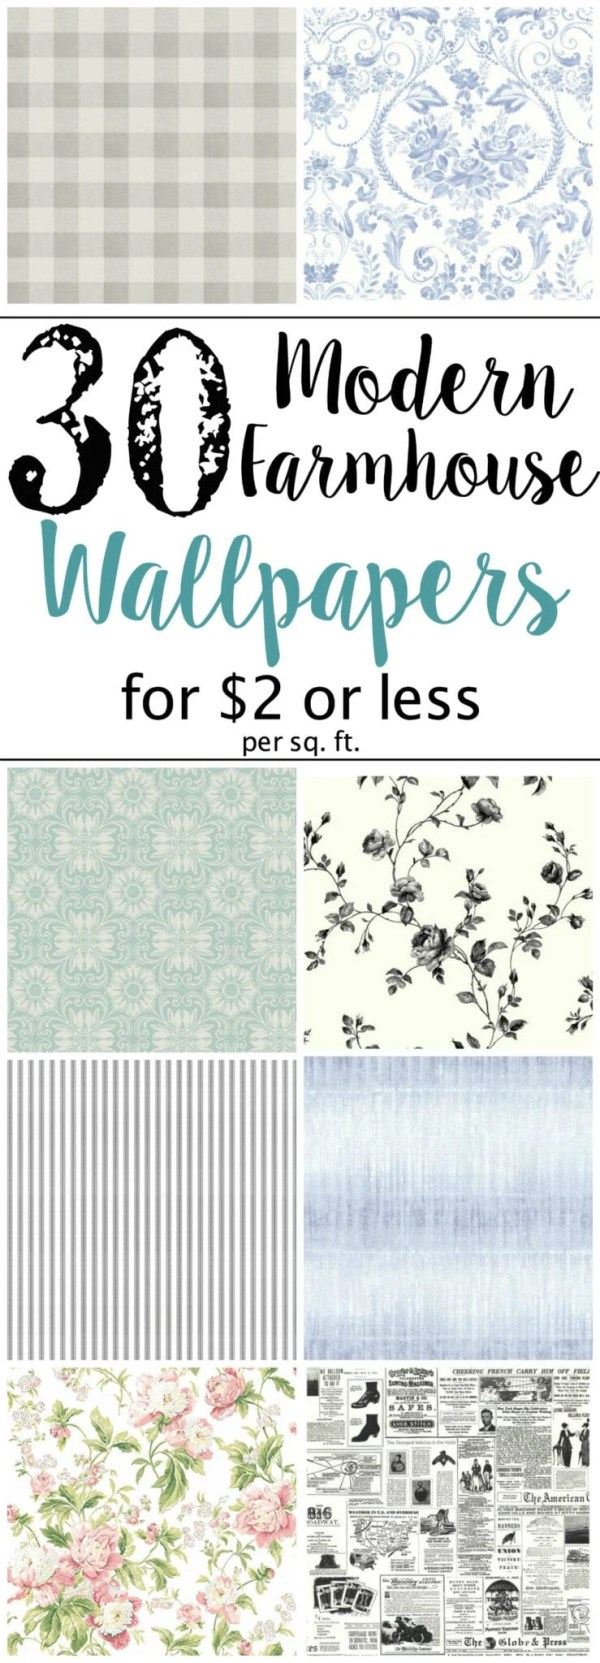 30 Modern Farmhouse Wallpaper Designs on a Budget | blesserhouse.com - A budget-friendly shopping guide with 30 of the best modern farmhouse style wallpaper designs for $2 or less per square foot.